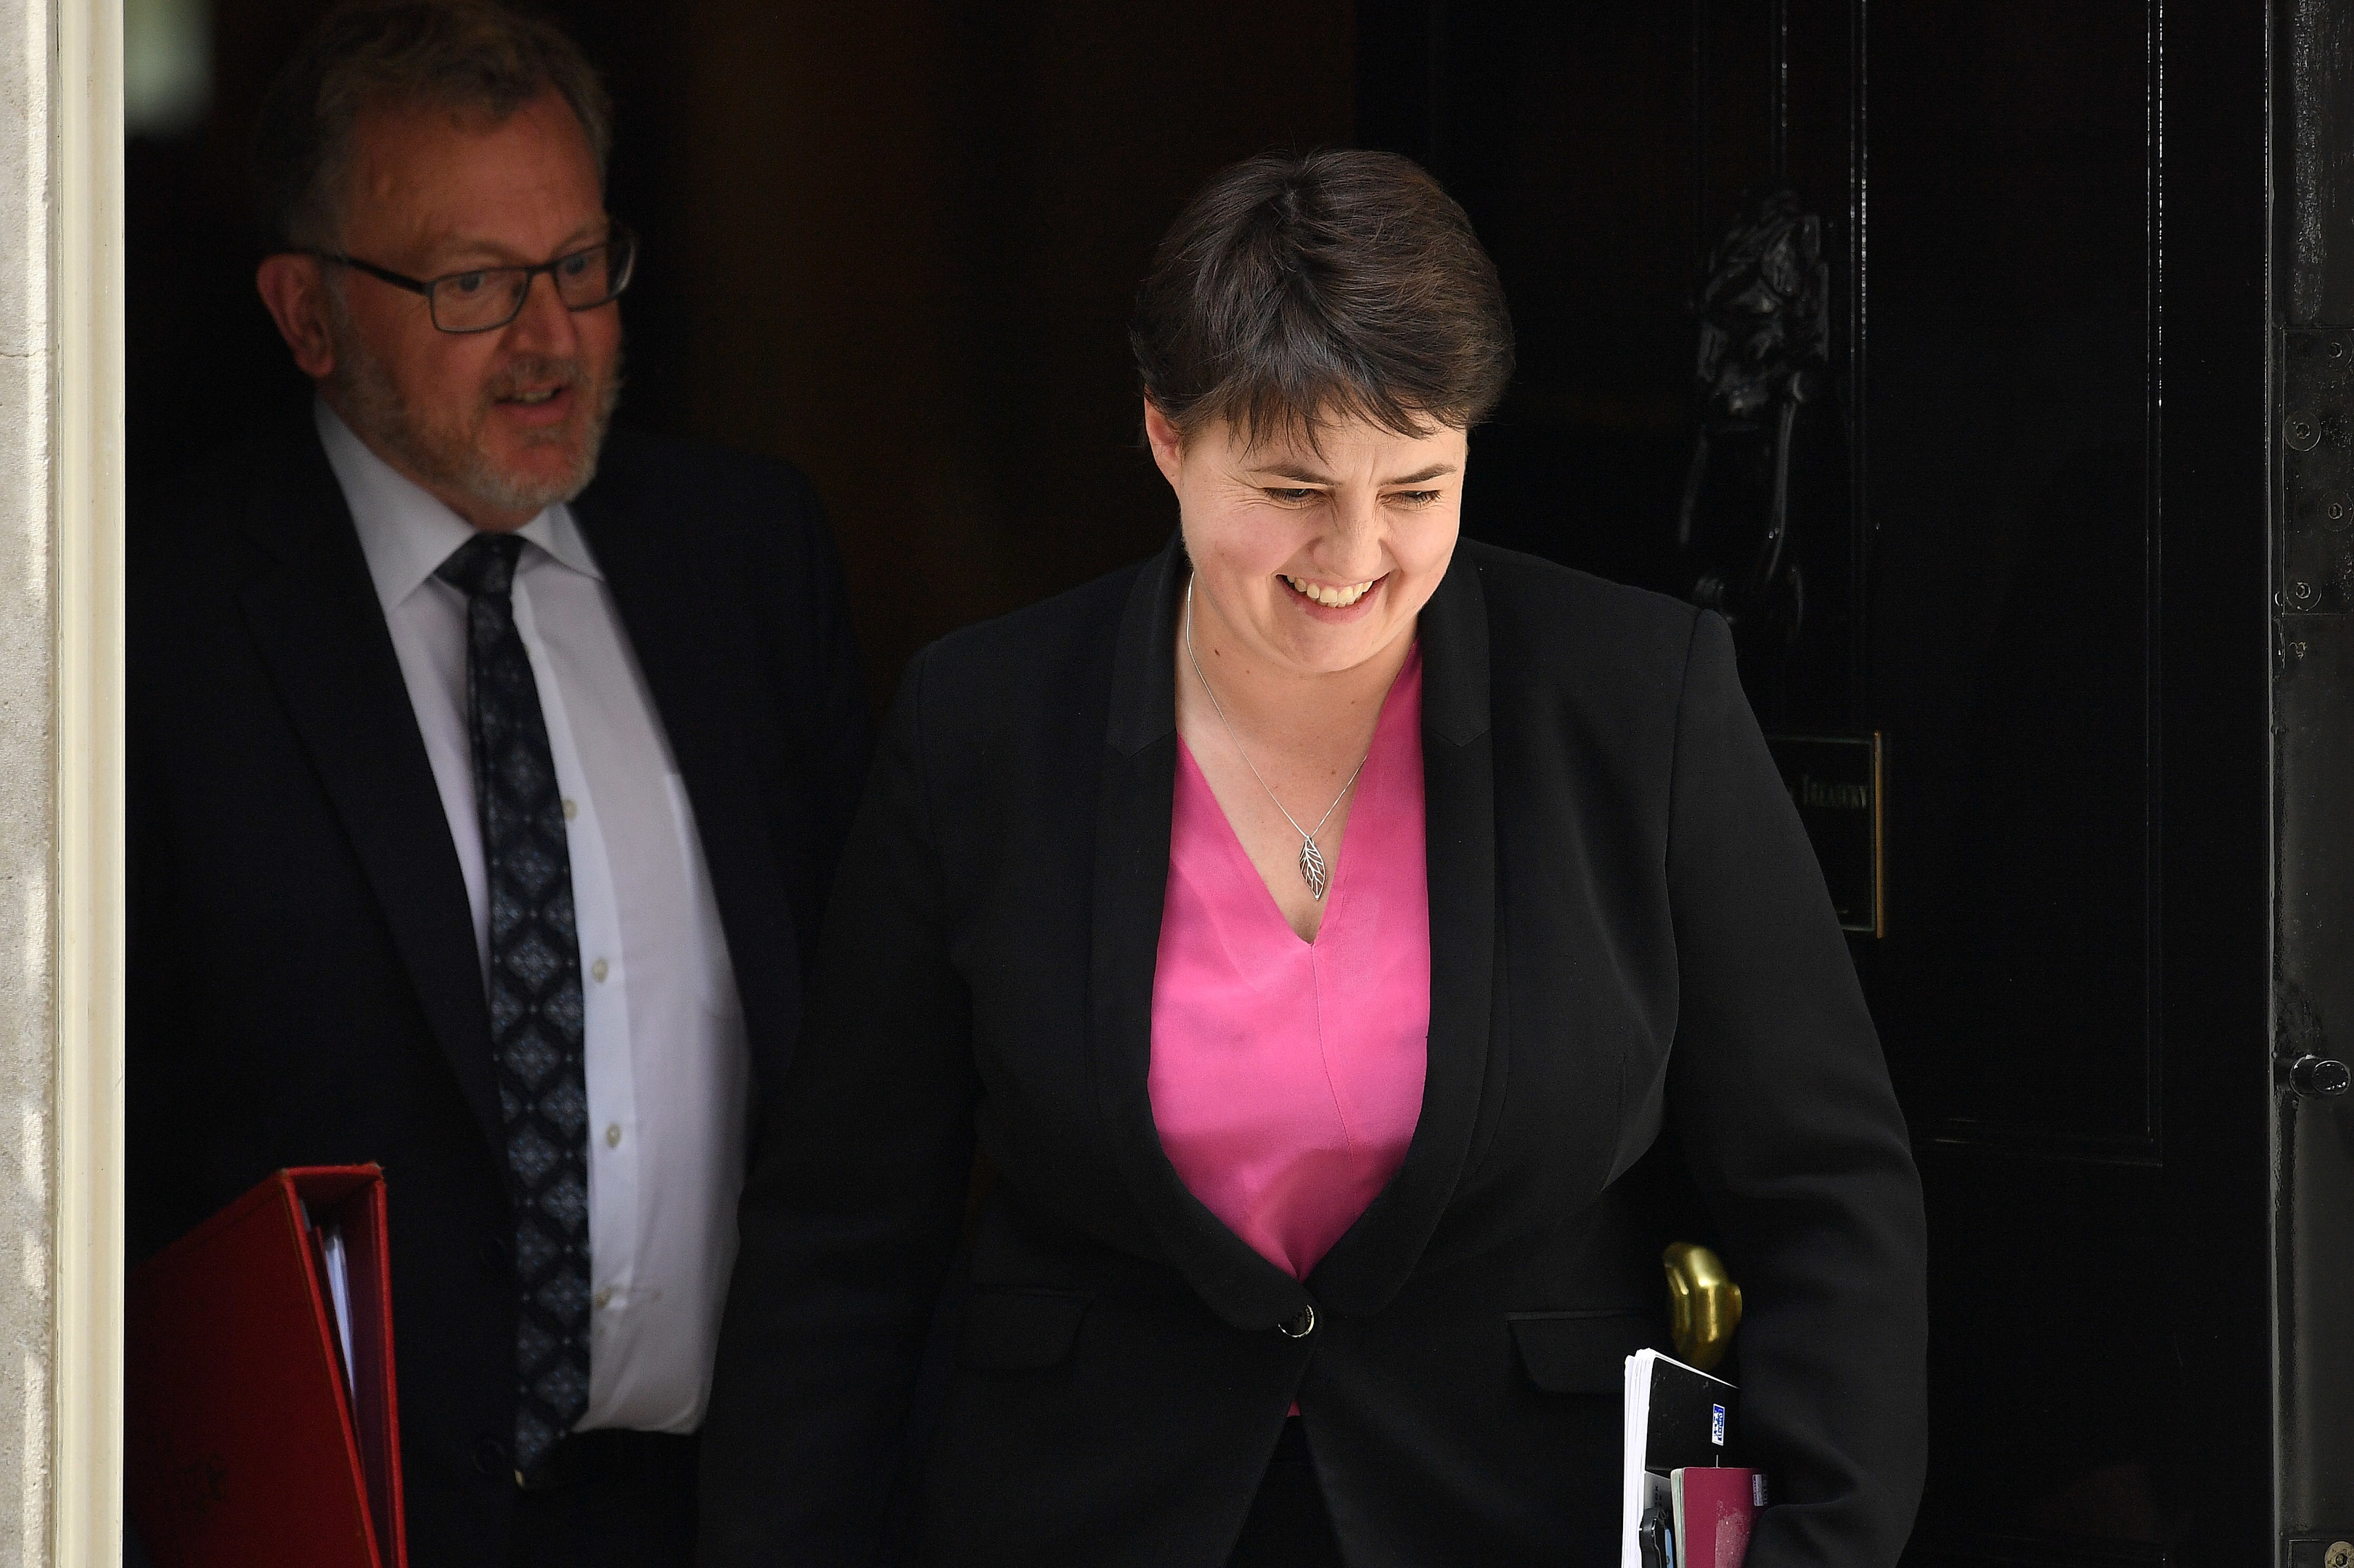 Ruth Davidson leaving 10 Downing Street with Scottish Secretary David Mundell this week.